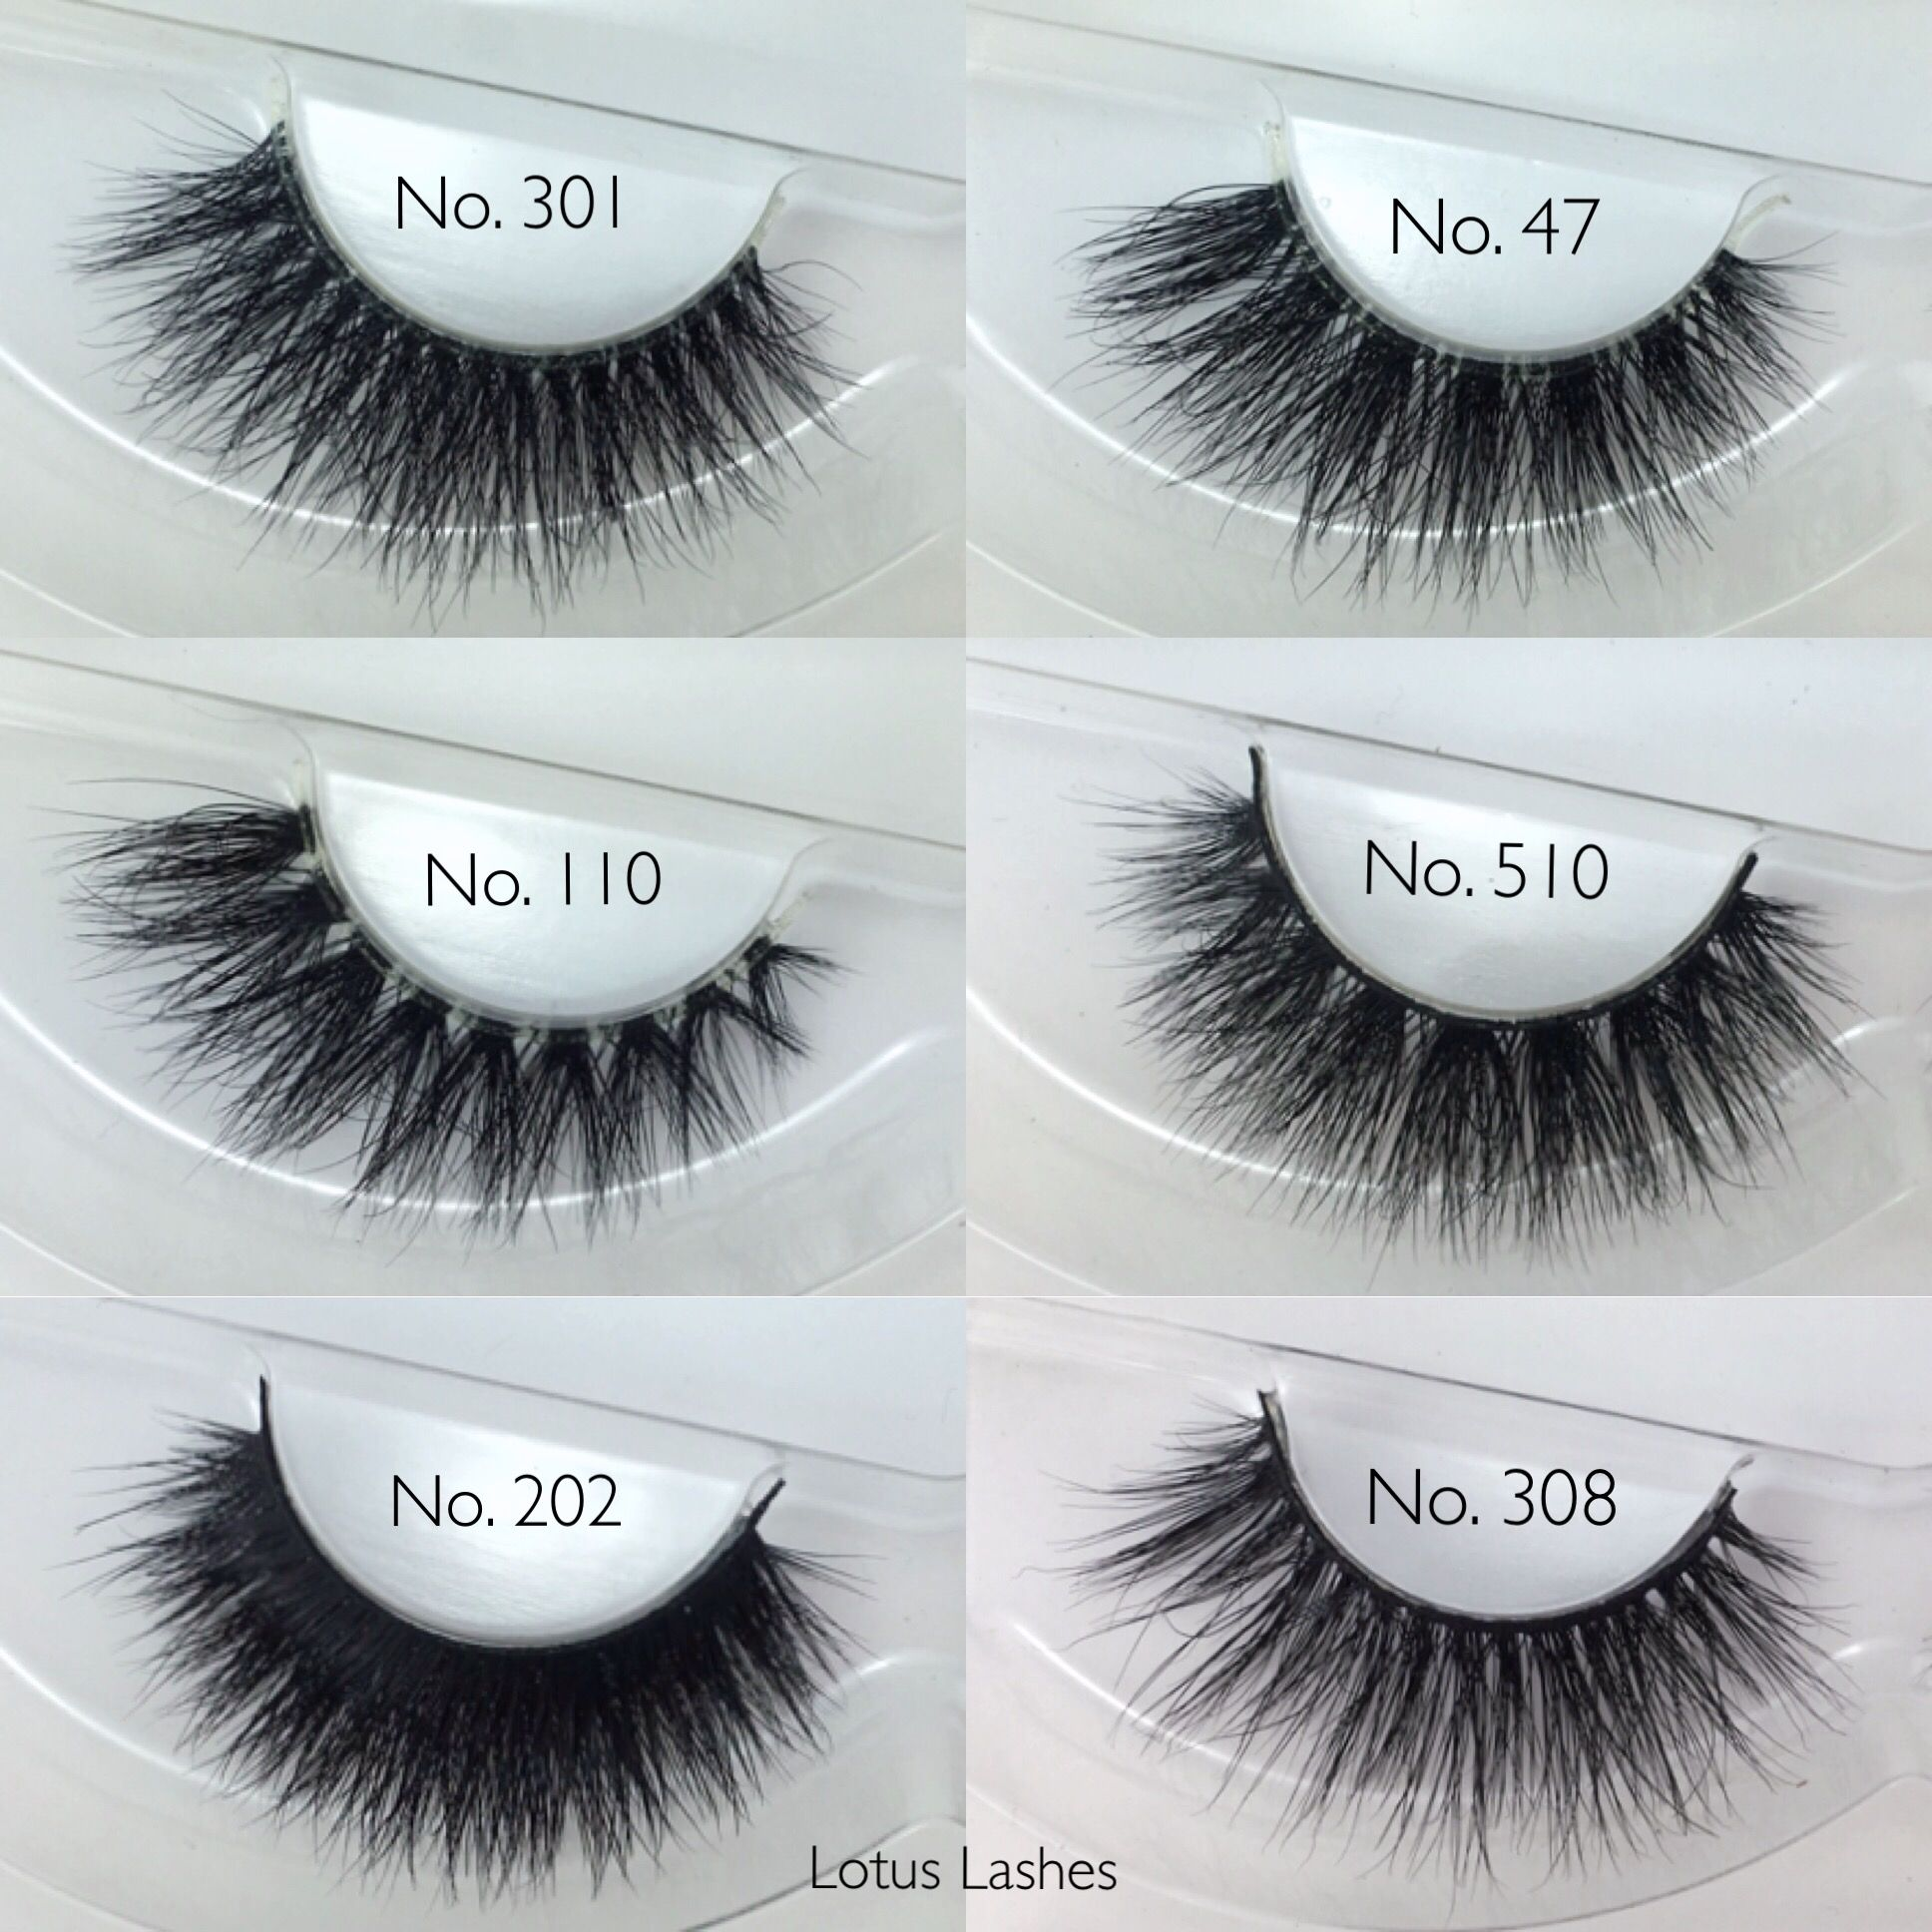 eb1a800e435 We now offer over 30 different lash styles including 3D, double and  invisible band 100% natural mink lashes!